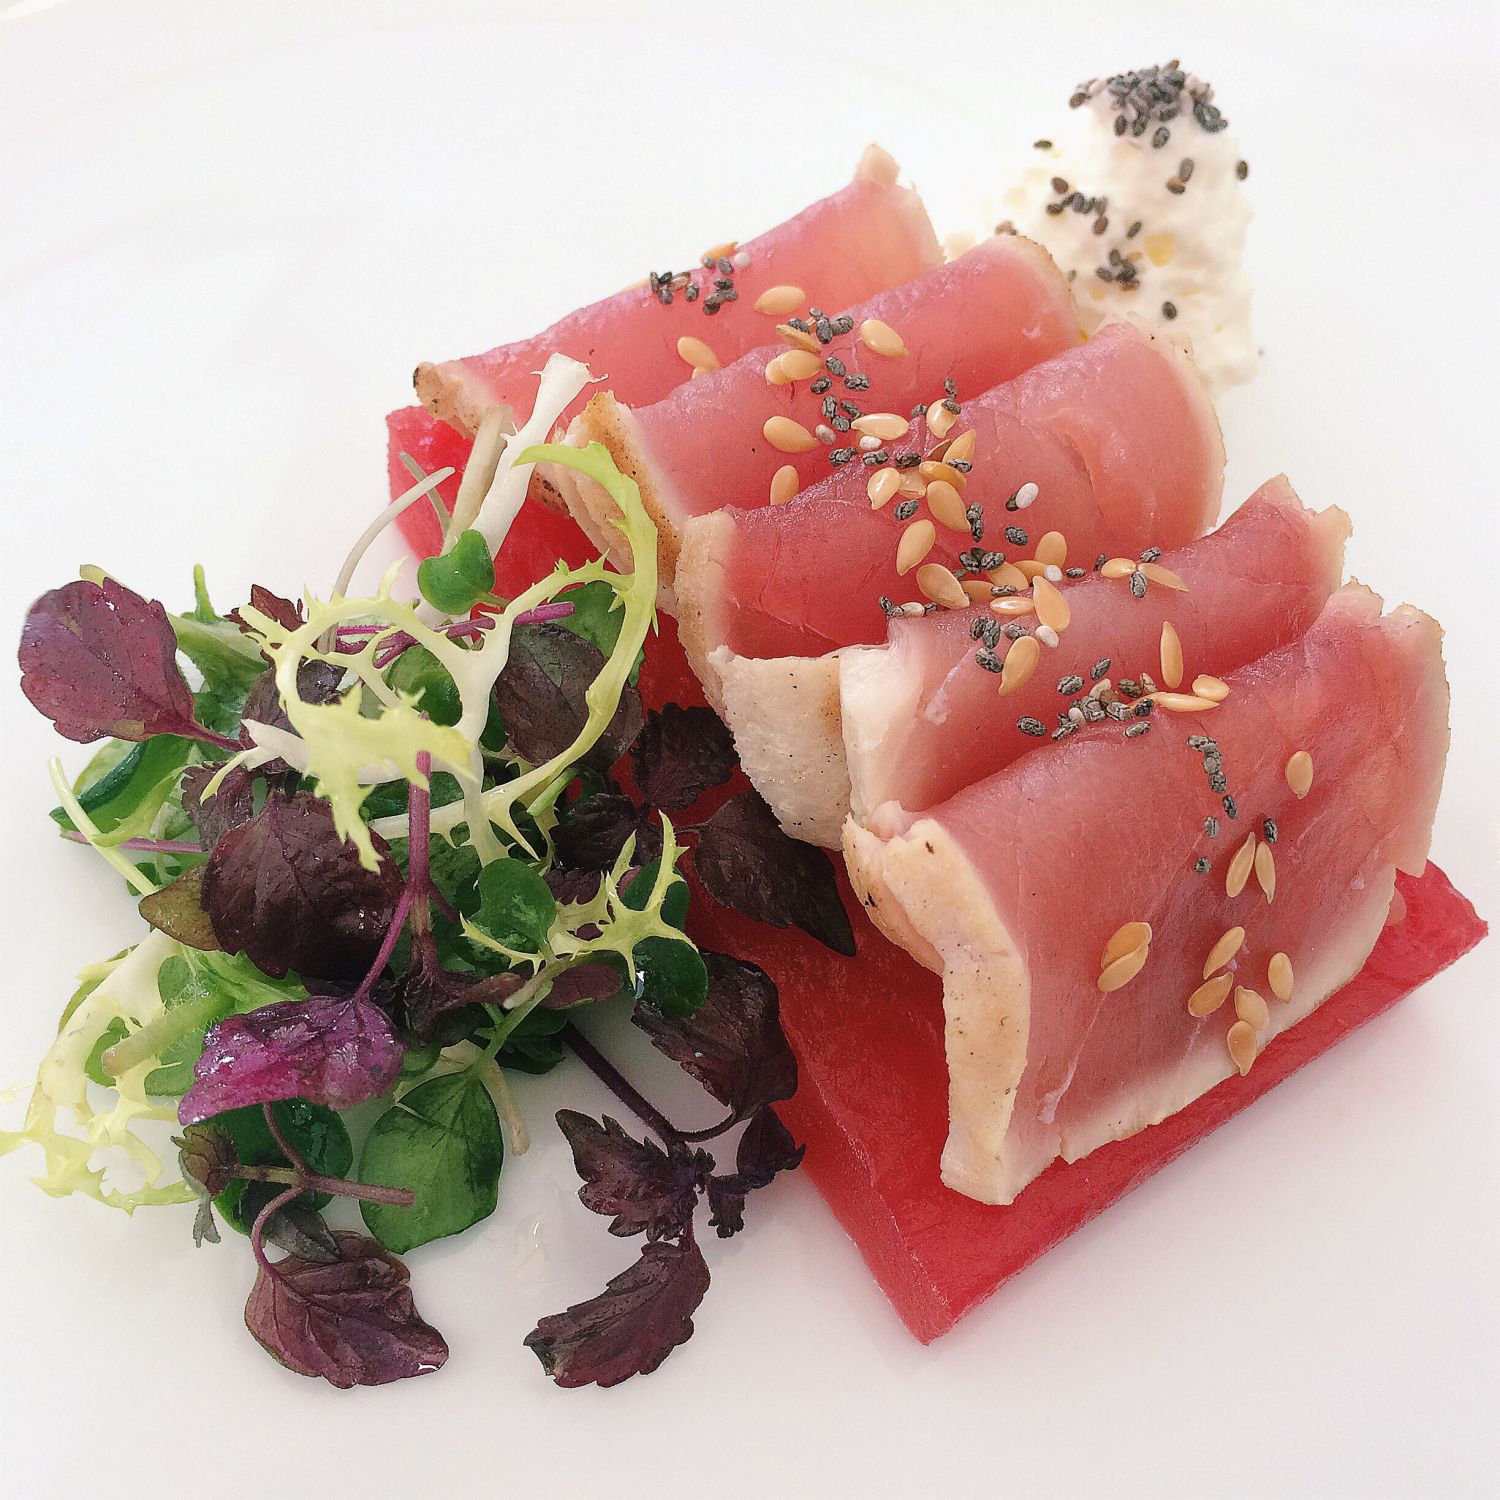 Rare Yellow Fin Tuna Tataki - Pool Grill